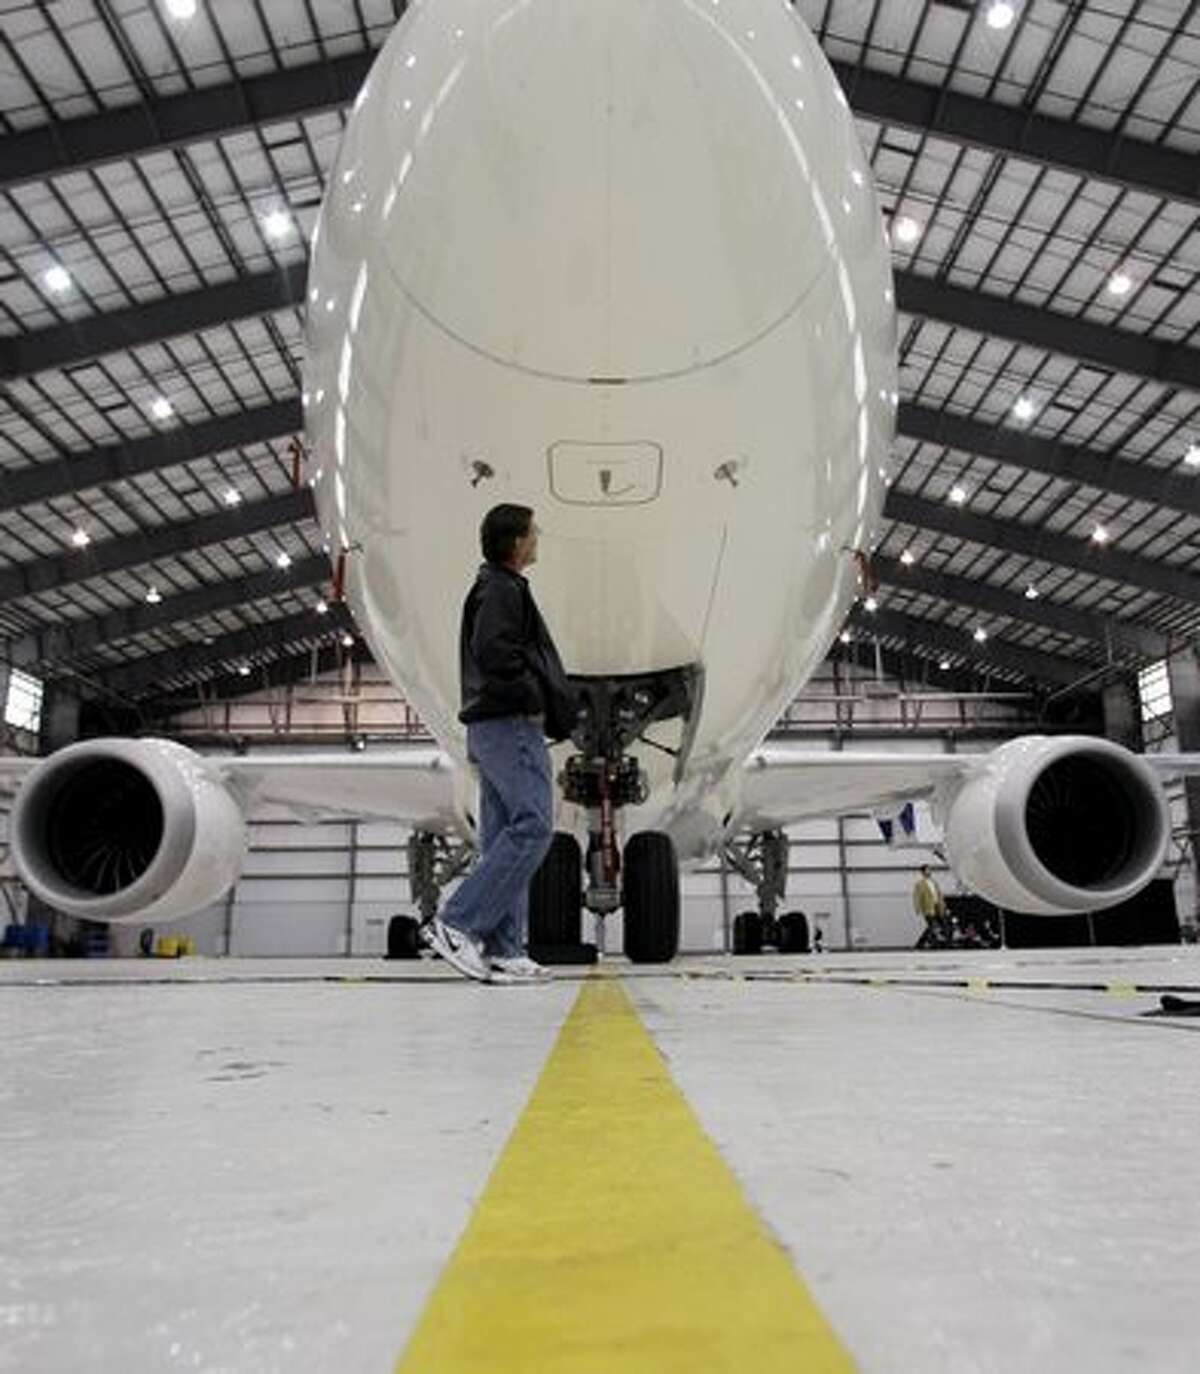 A worker looks at a Japan Airlines Boeing 787 on Friday, March 11, 2011, at Boeing's Global Services & Support site in San Antonio. Boeing held an arrival ceremony for the aircraft, which will get its final upgrades in San Antonio. (AP Photo/Eric Gay) Related story